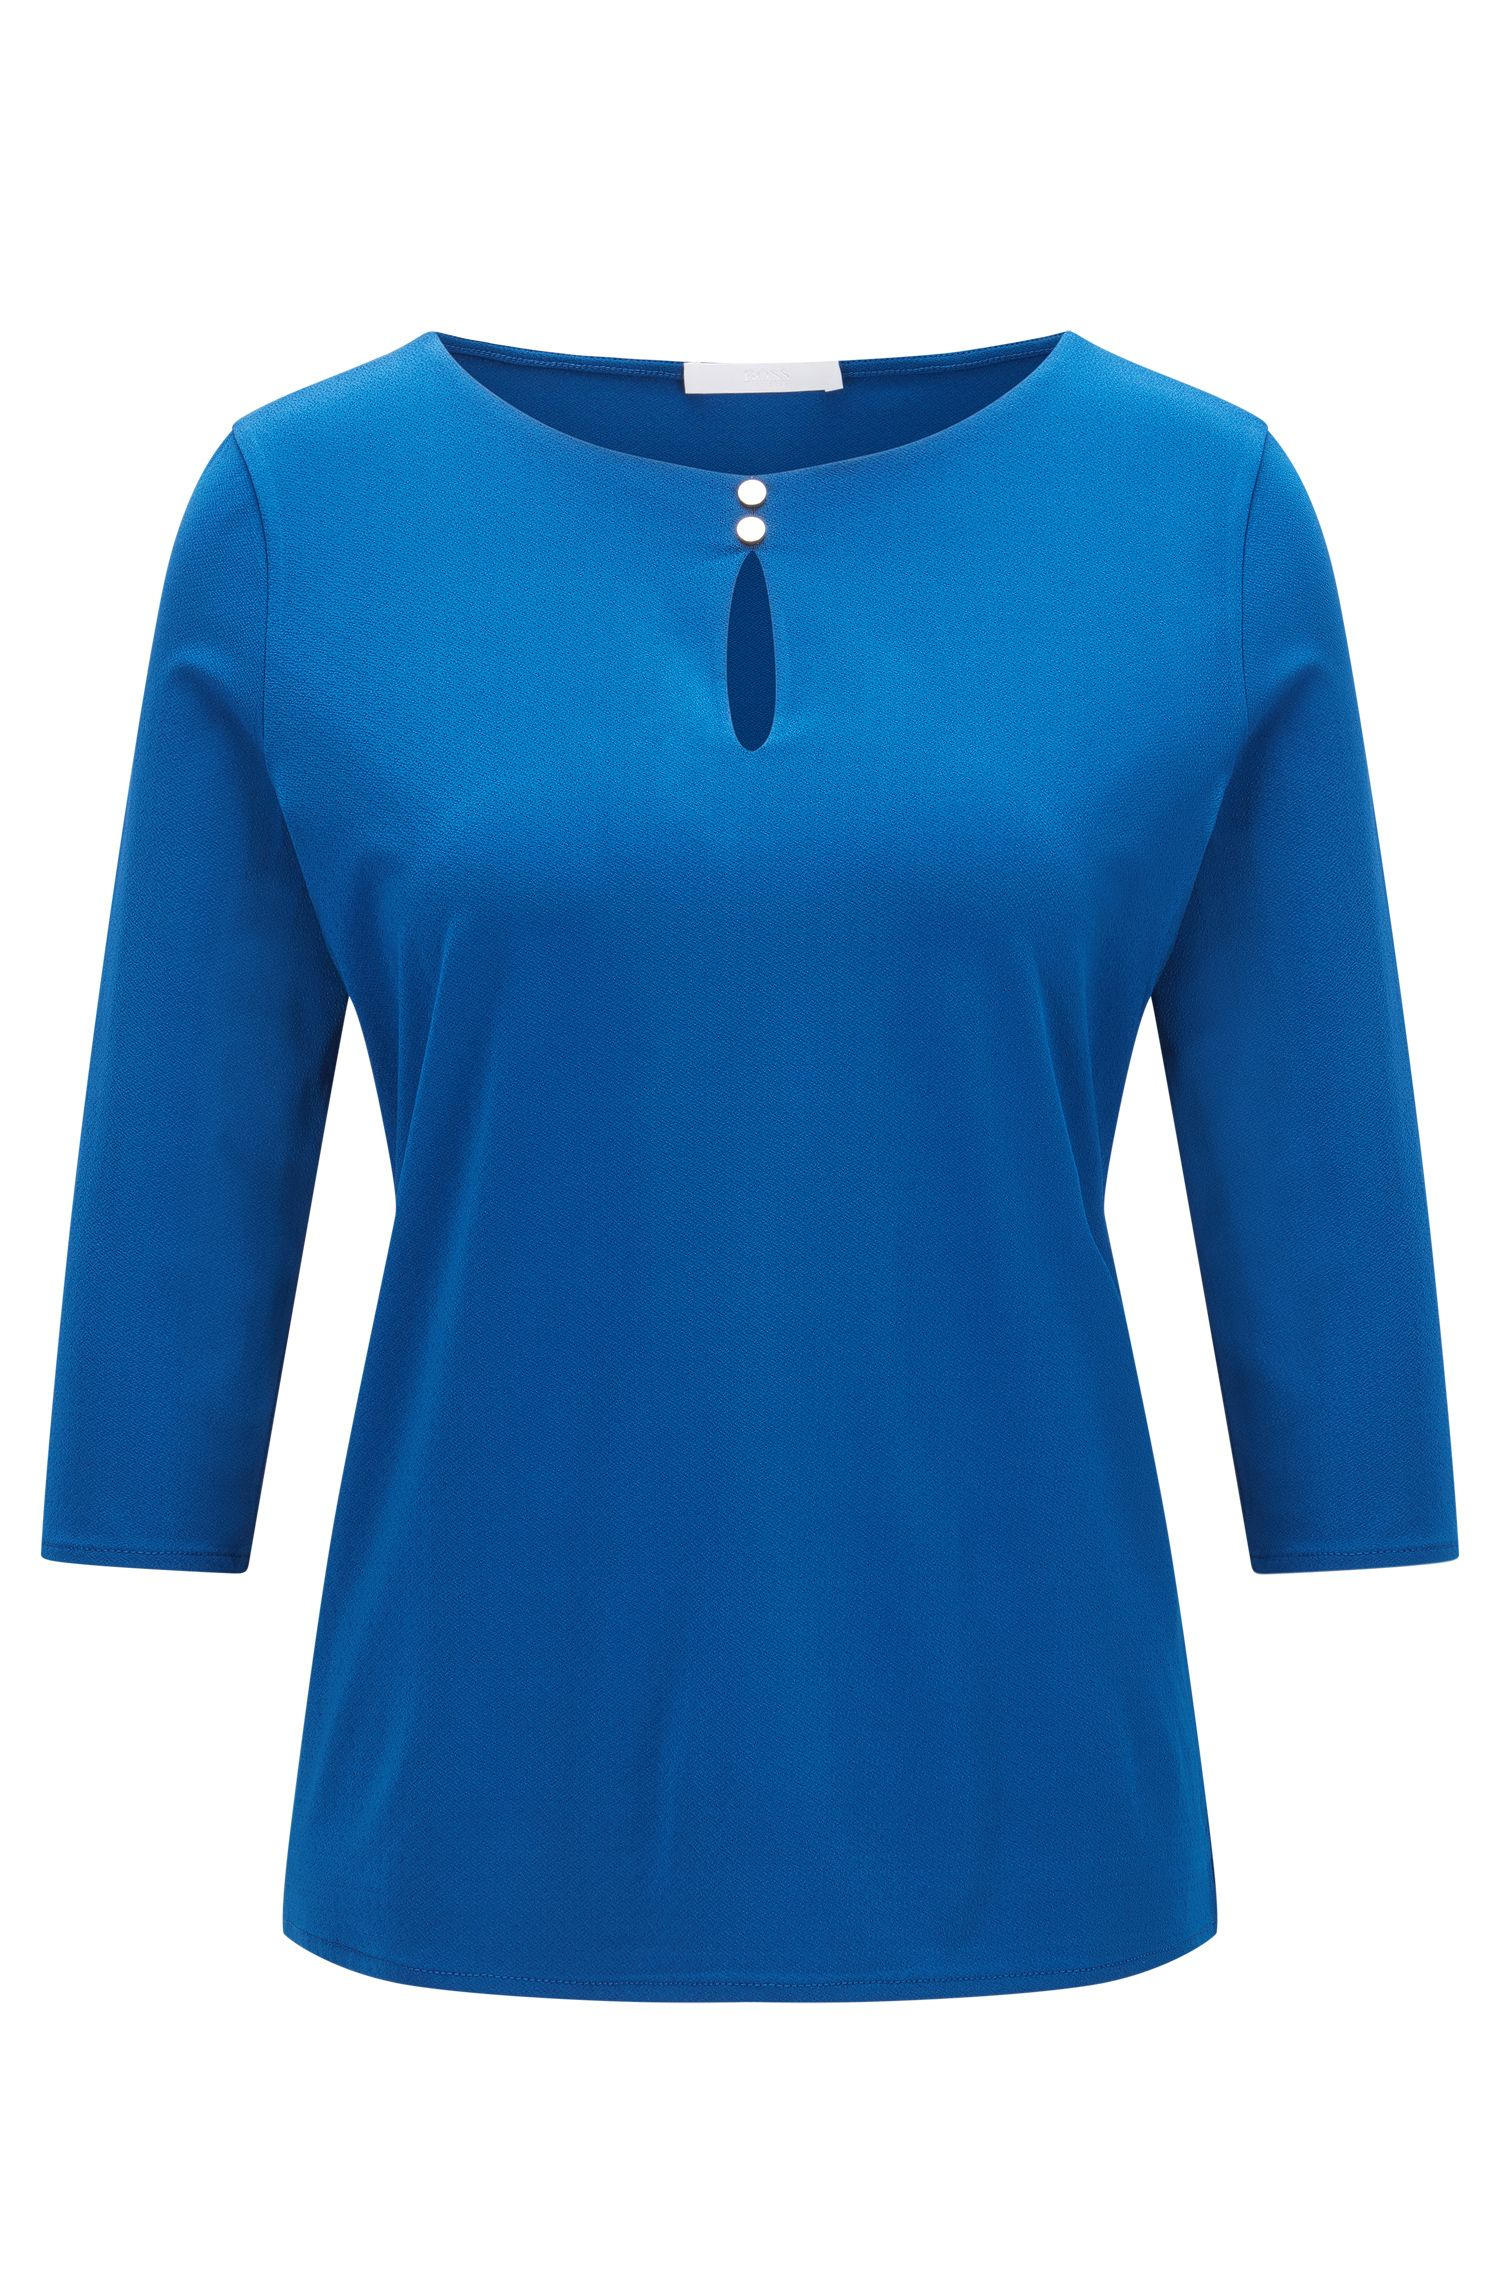 Regular-fit top in stretch crêpe jersey